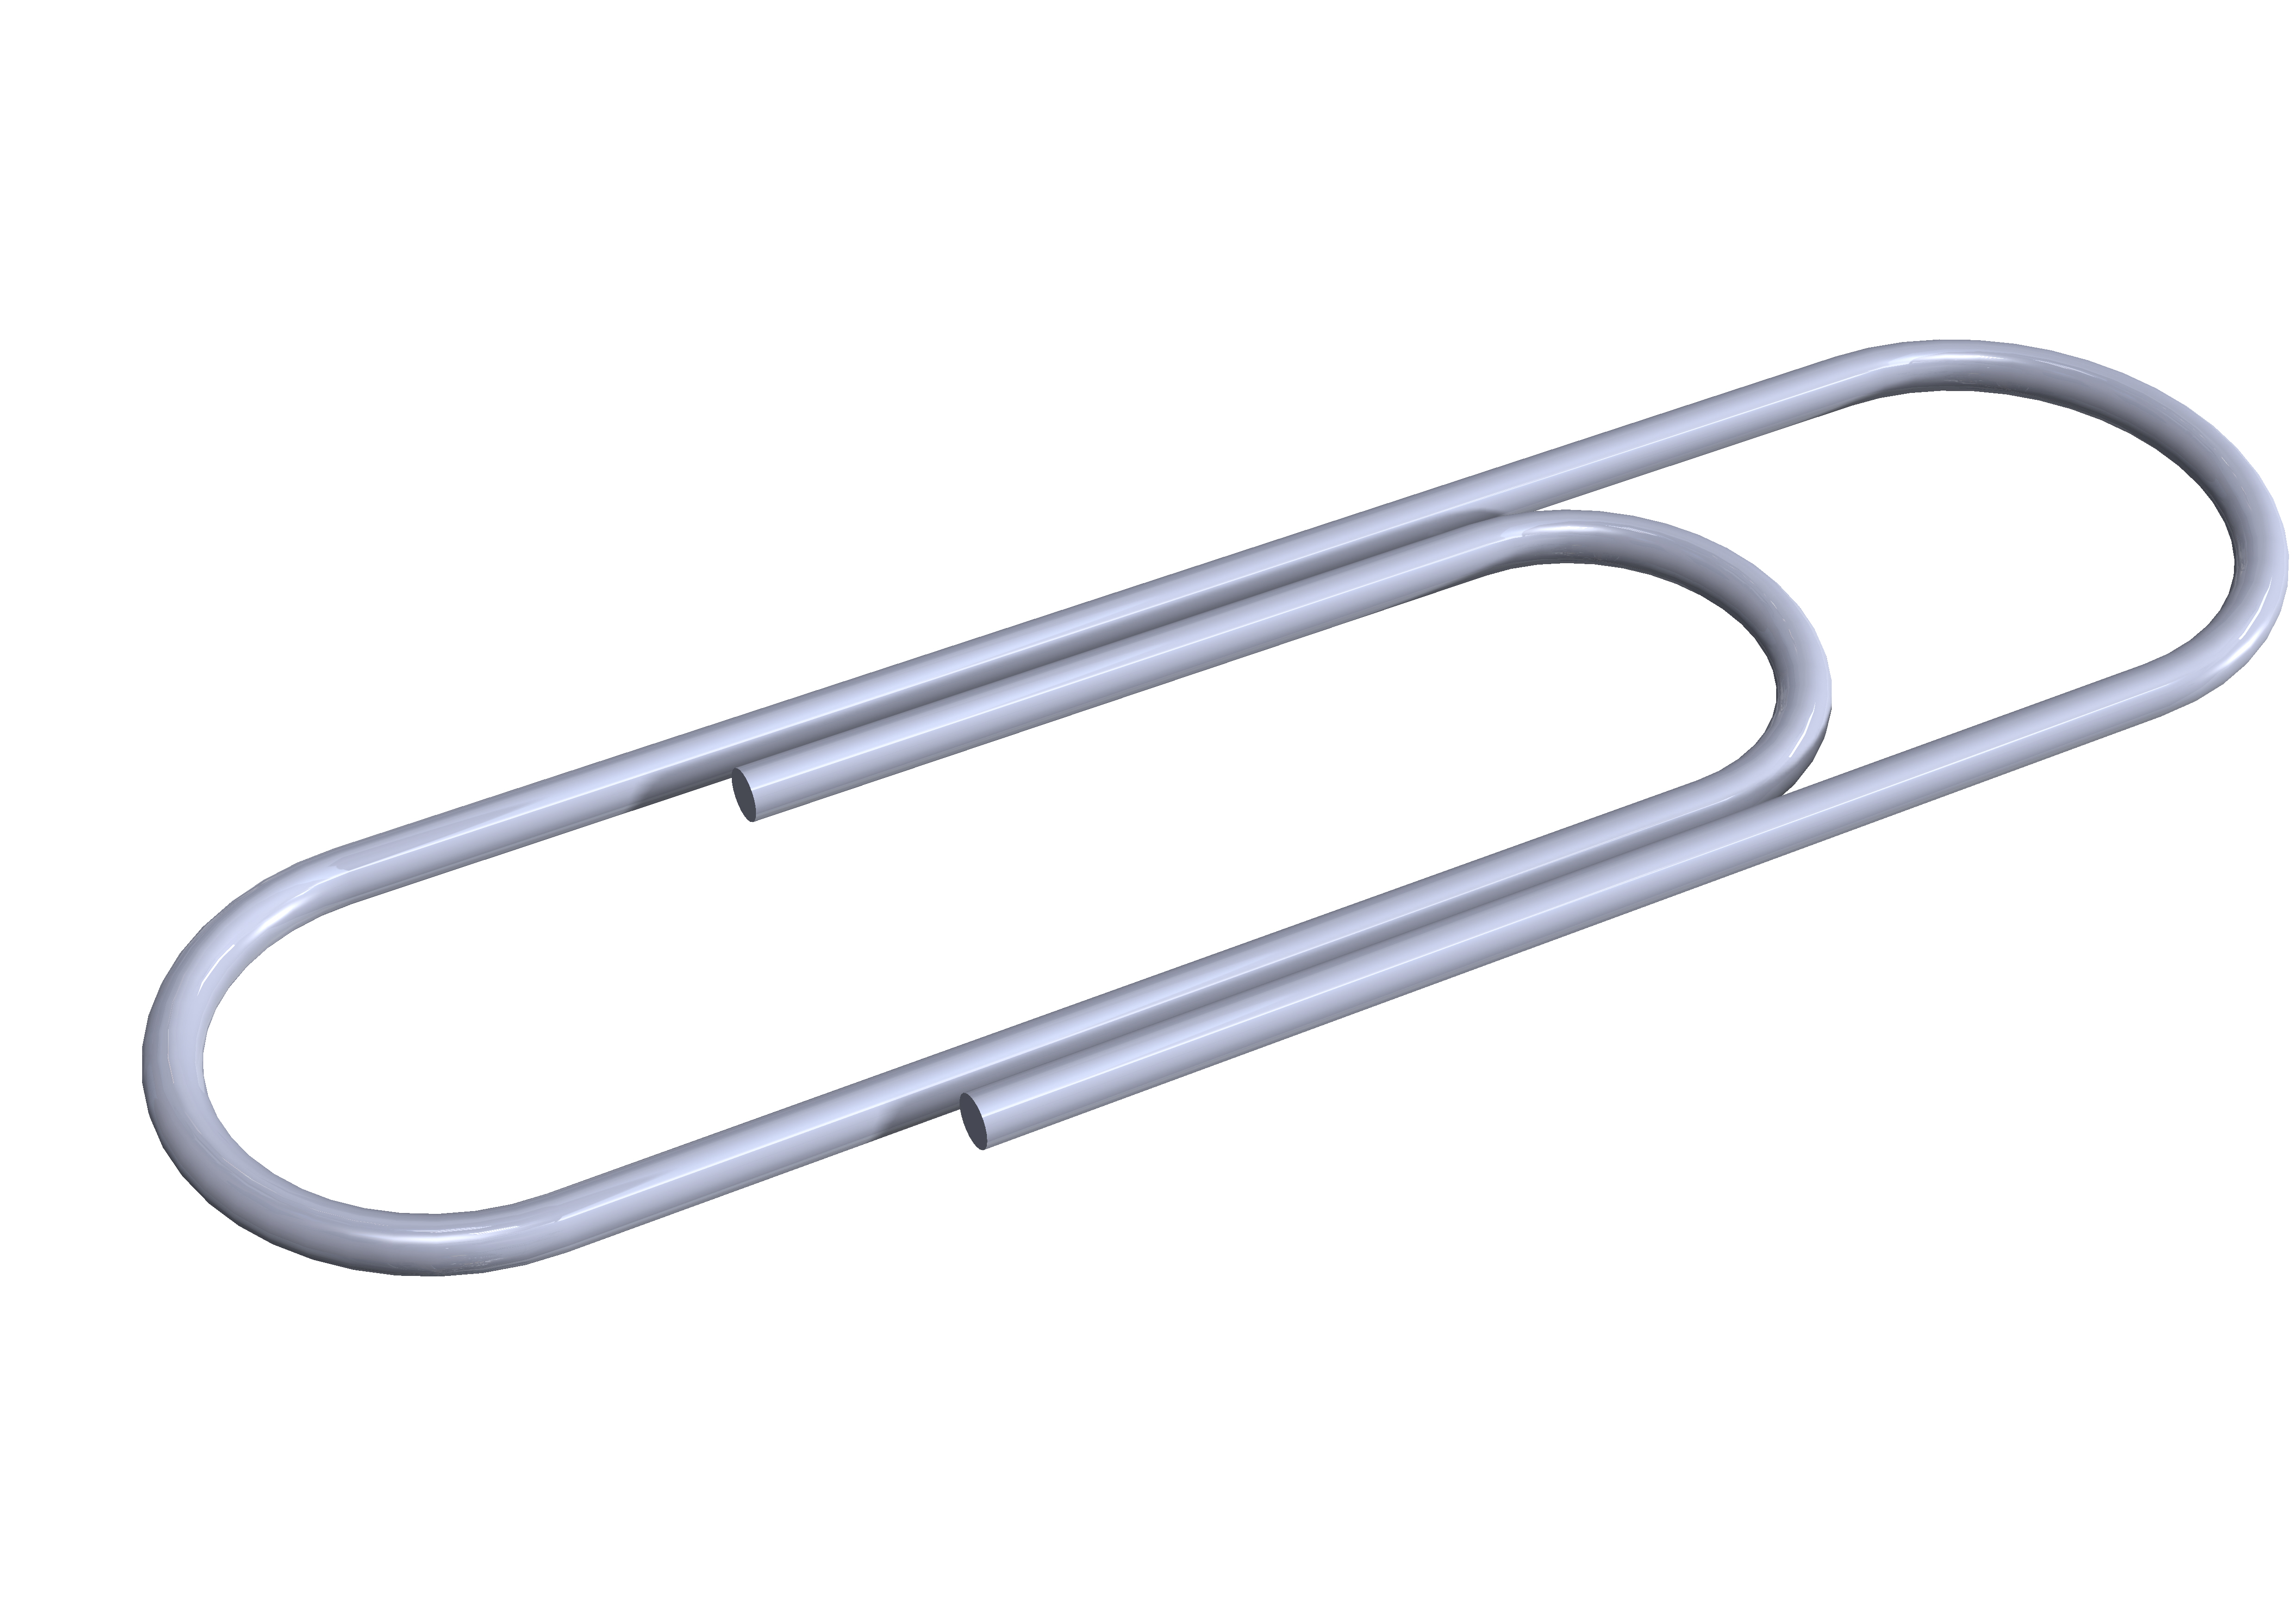 Paperclip How to Model a Paperclip in SolidWorks?